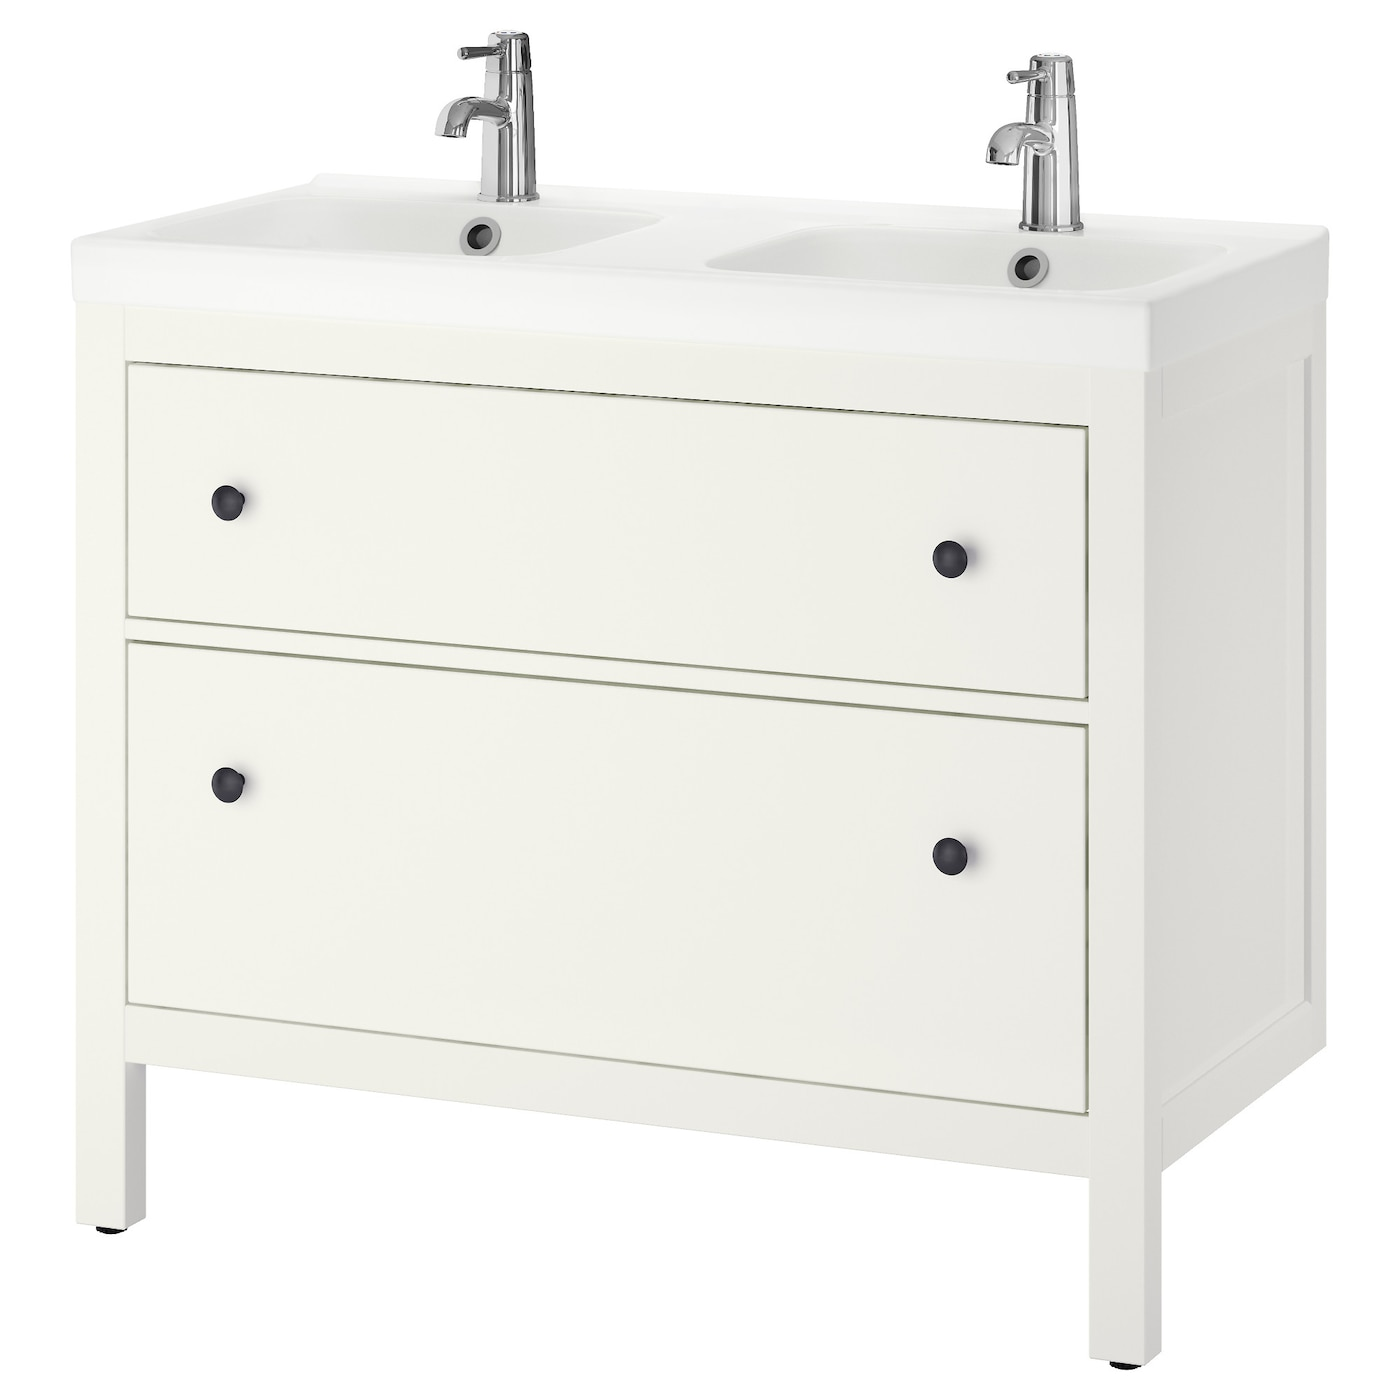 Ikea Odensvik Hemnes Wash Stand With 2 Drawers